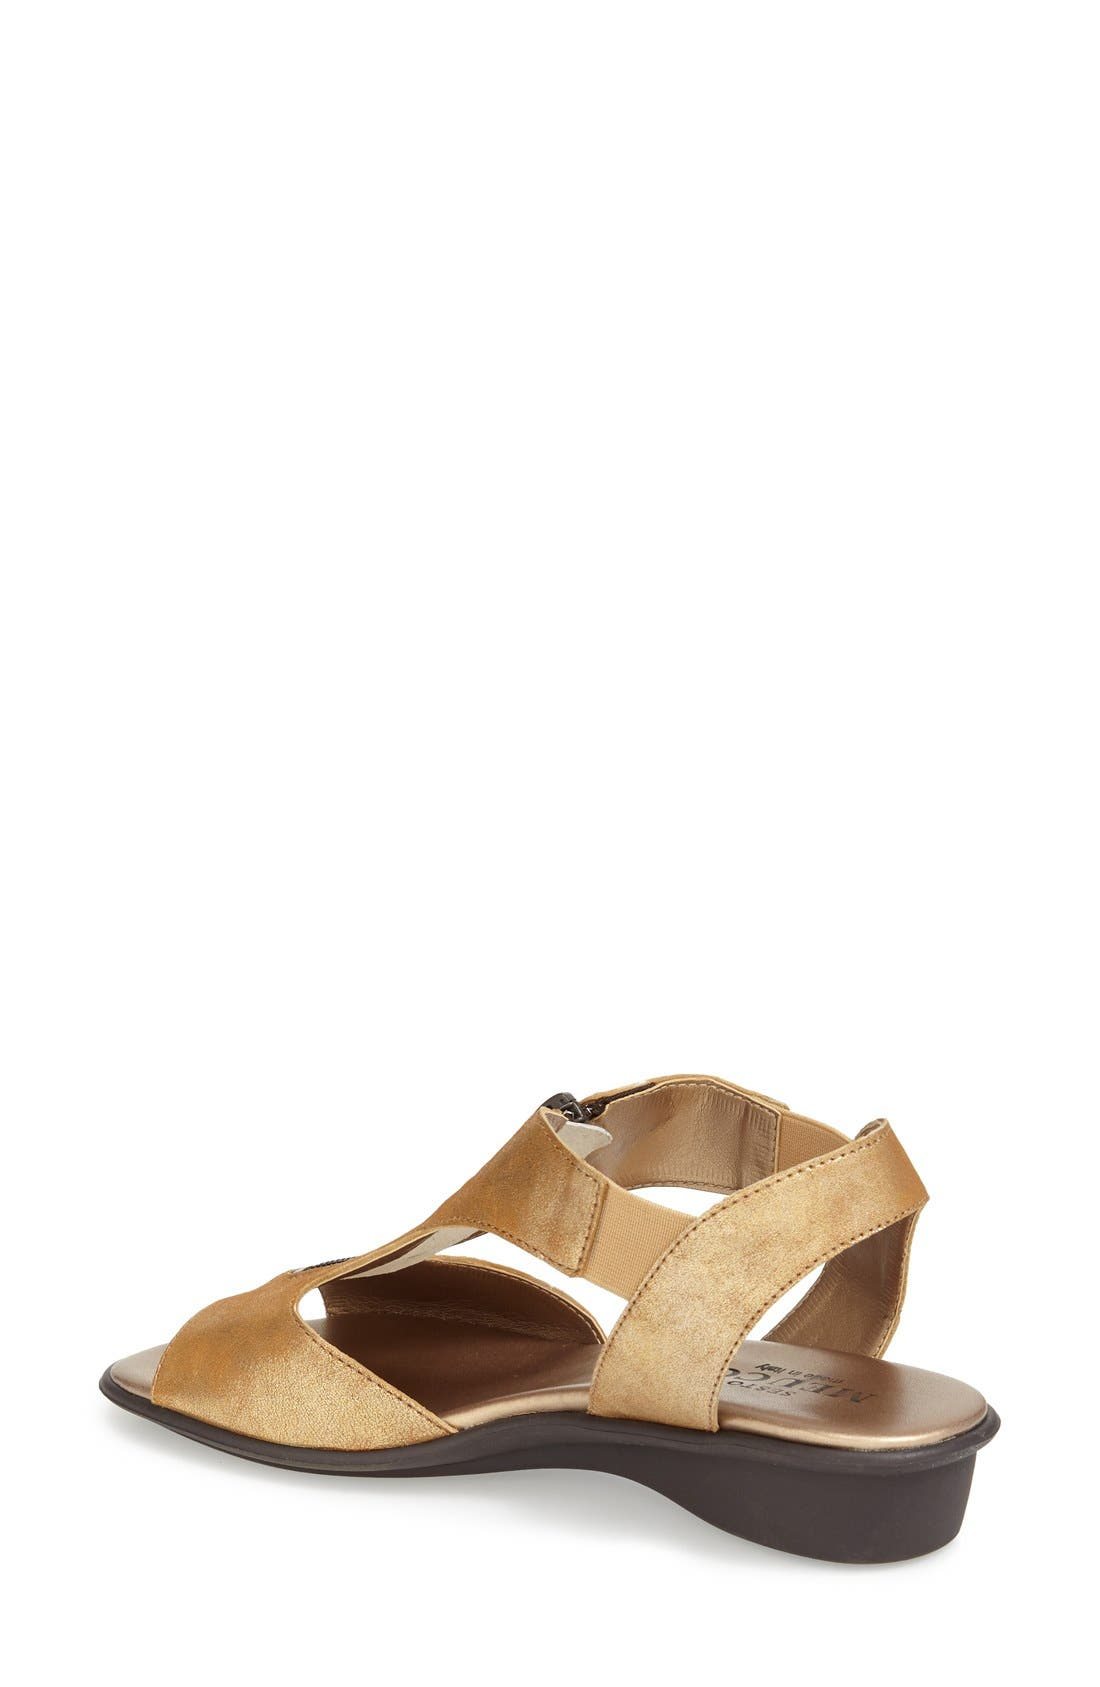 'Euclid' Sandal,                             Alternate thumbnail 2, color,                             BROWN LEATHER